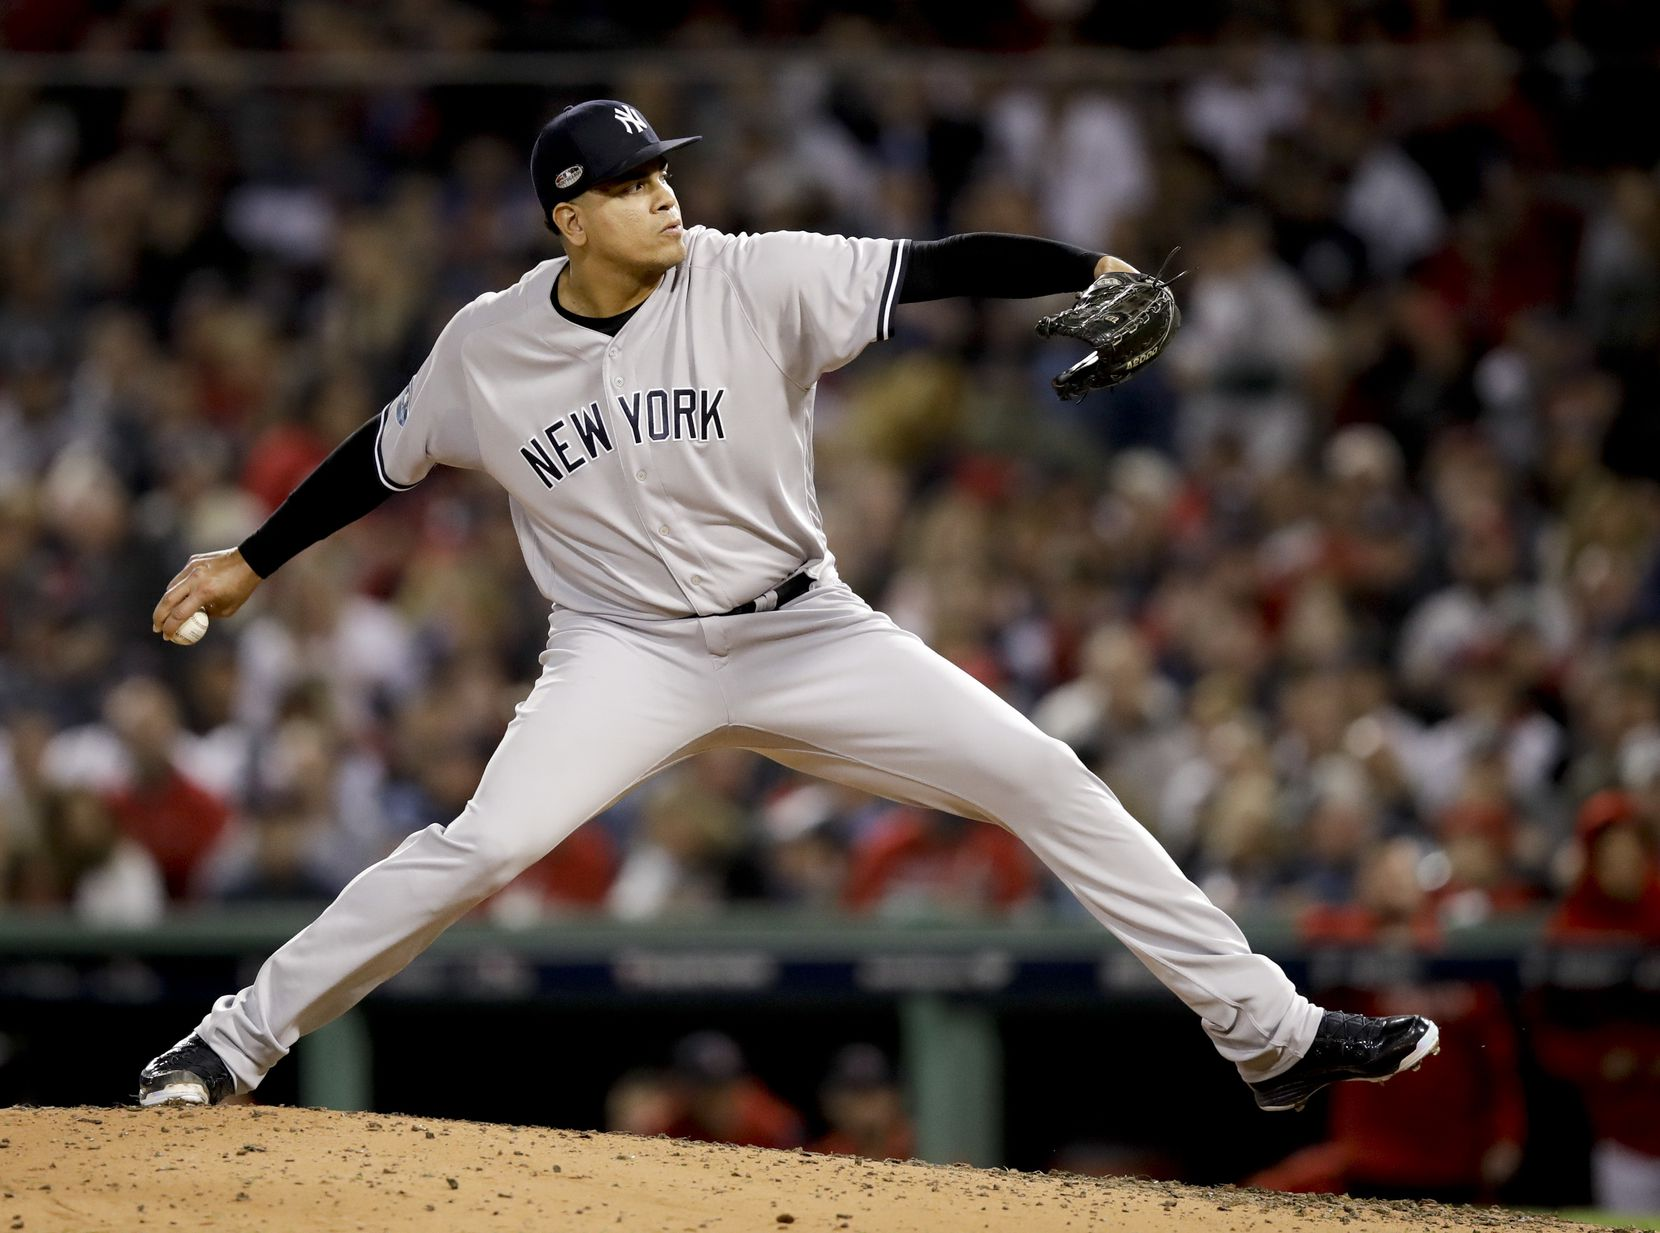 FILE - In this Oct. 6, 2018, file photo, New York Yankees relief pitcher Dellin Betances throws against the Boston Red Sox during the sixth inning of Game 2 of a baseball American League Division Series in Boston. (AP Photo/Charles Krupa, File)